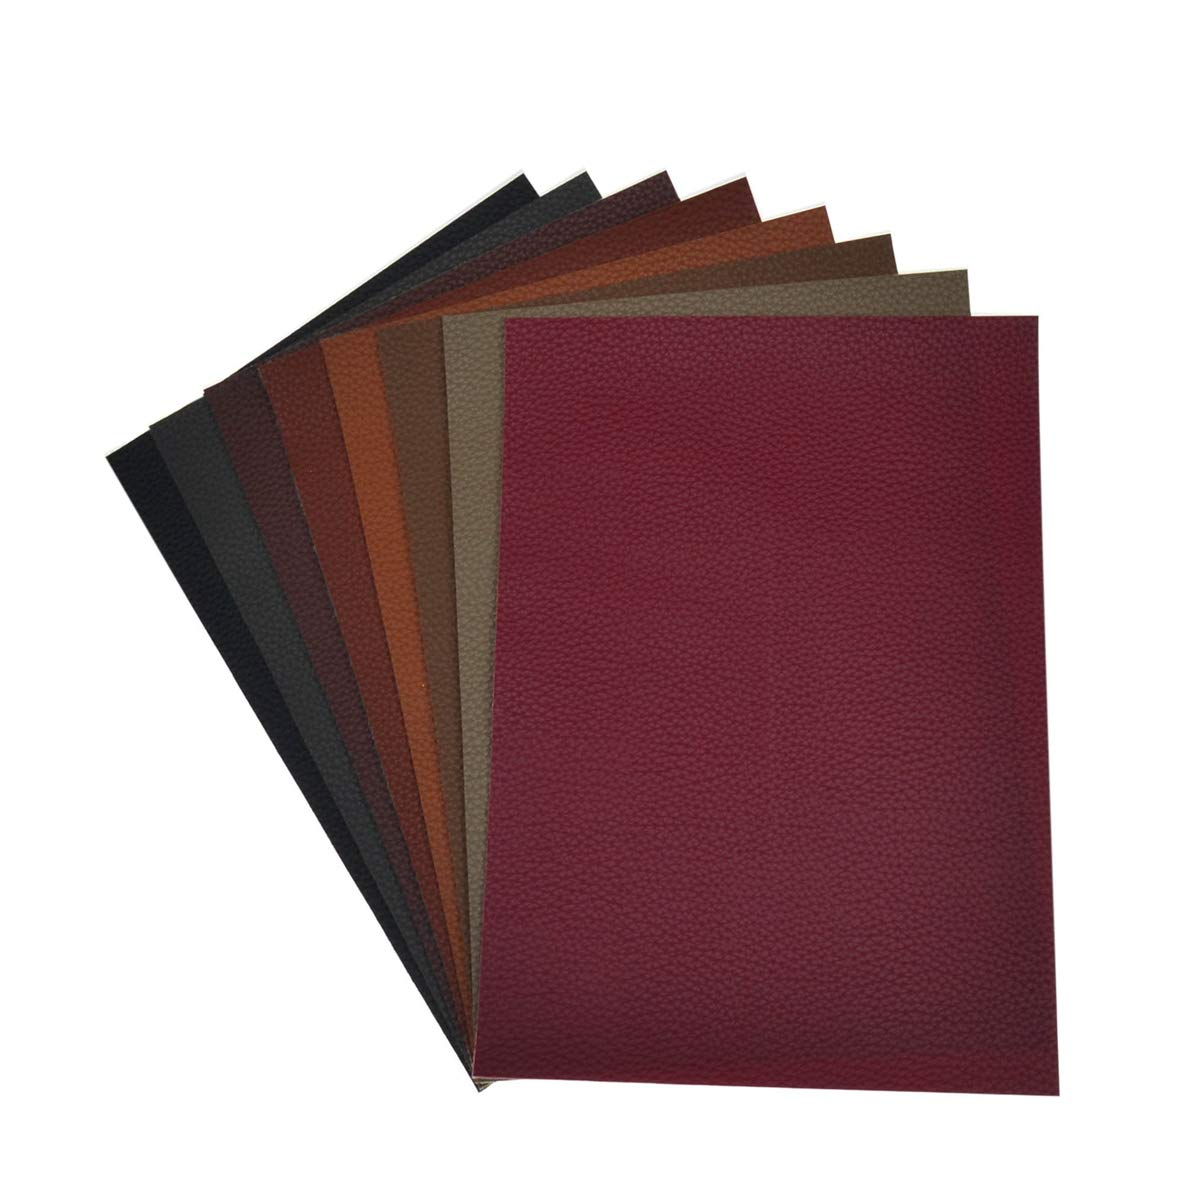 Faux Leather Sheets for Earrings and Bows-8 Pieces A4 Size 8 x 12 Inch(21 x 30 cm) Solid Color Litchi Grain Texture Faux Leather Fabric Sheets Cotton Back for Hair Bows, Headband, Wallet Making by Aomry (Image #2)